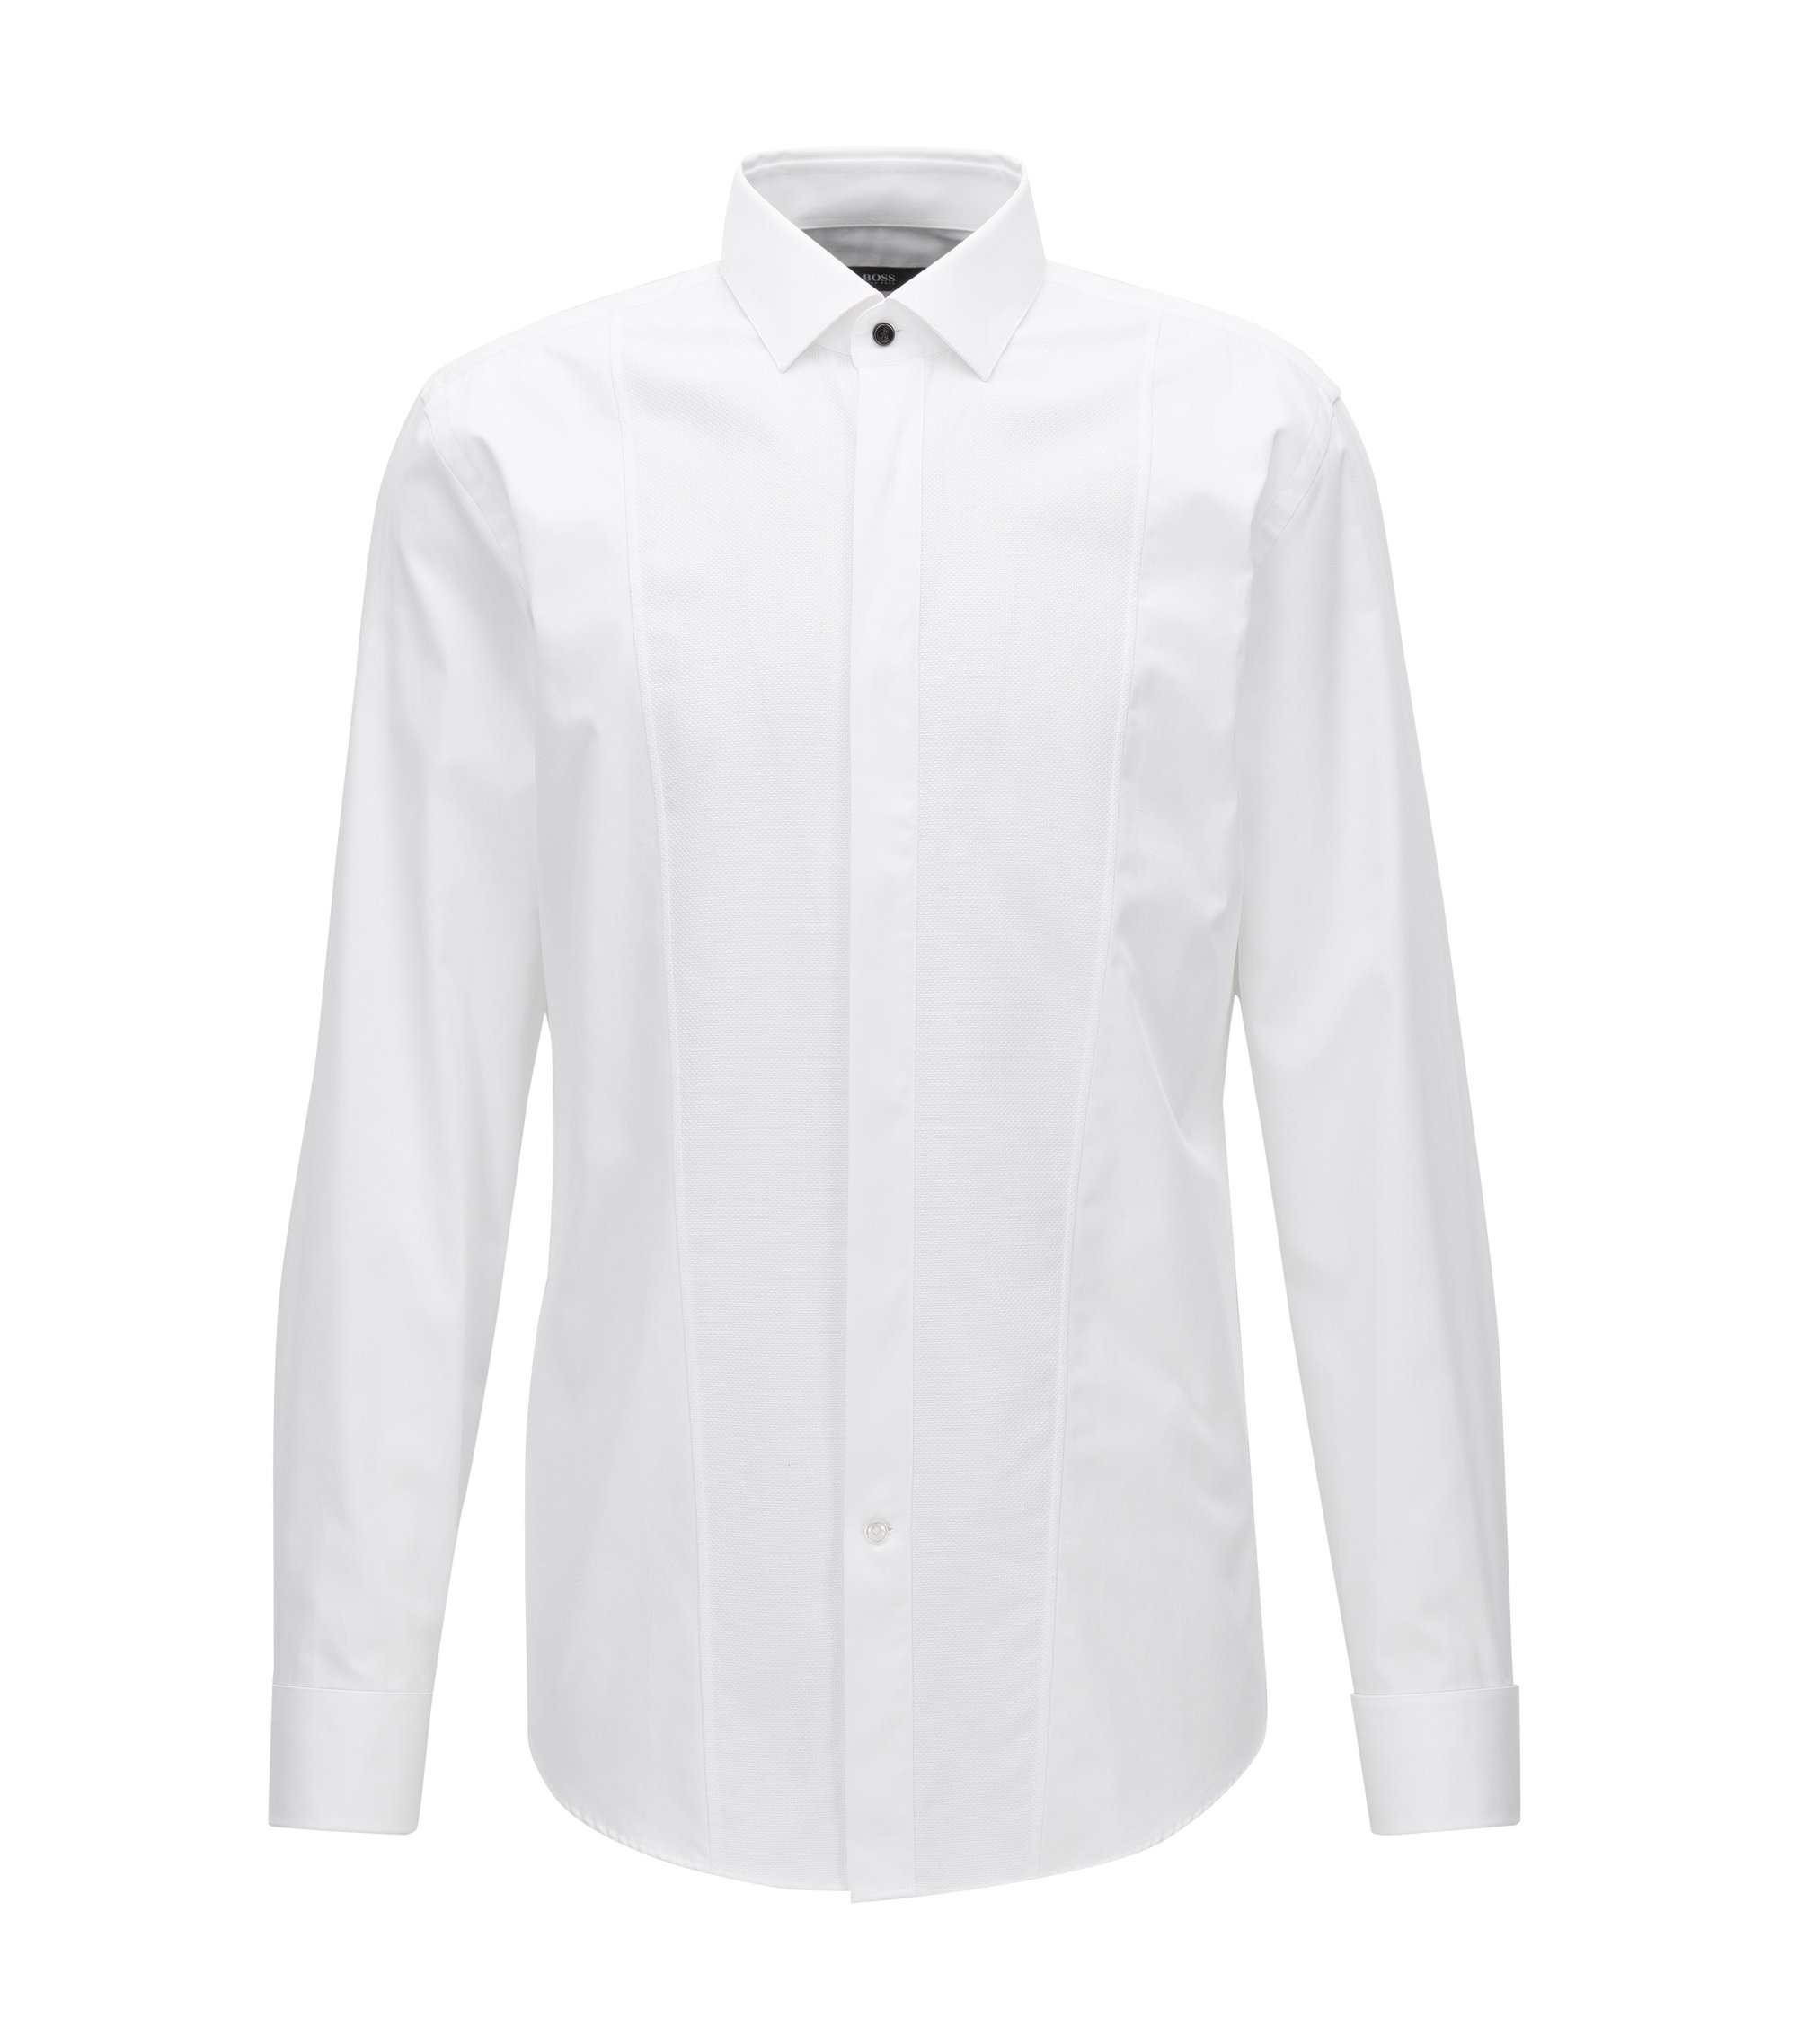 Dobby Bib Tuxedo Shirt, Slim Fit | Jarome, White